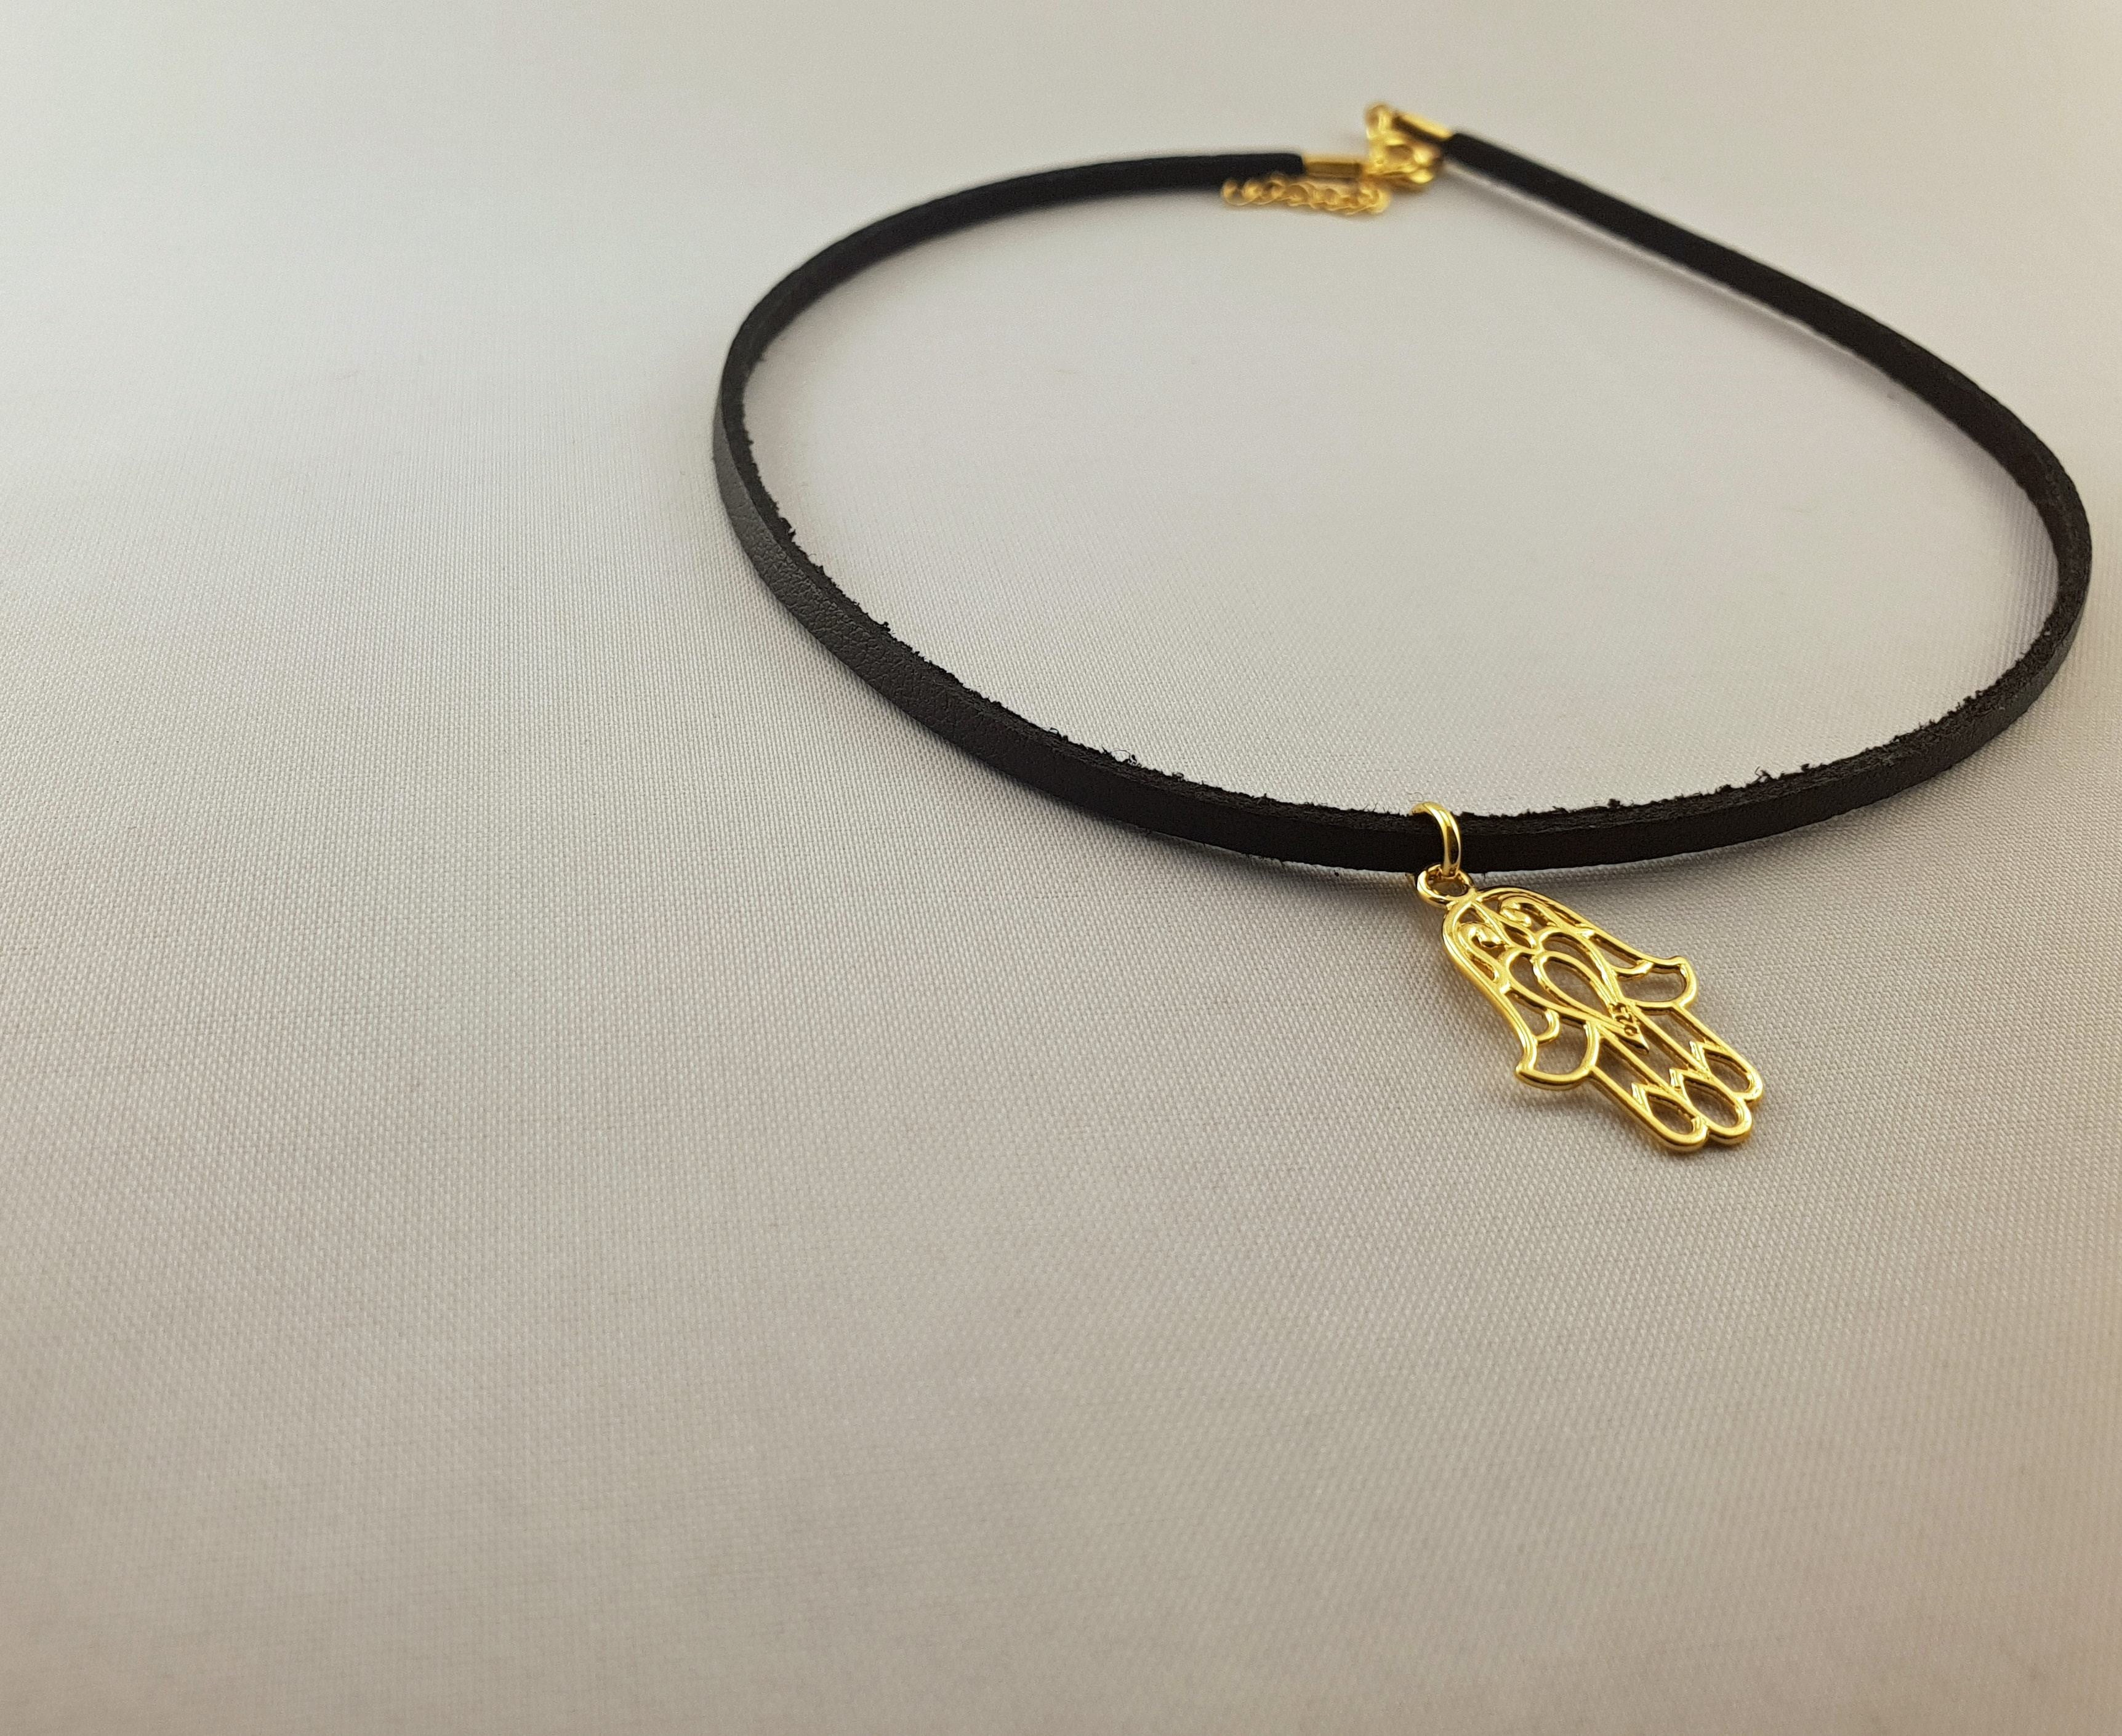 Leather Necklace - GOLD PLATED 24K HAMSA HAND - By Janine Jewellery